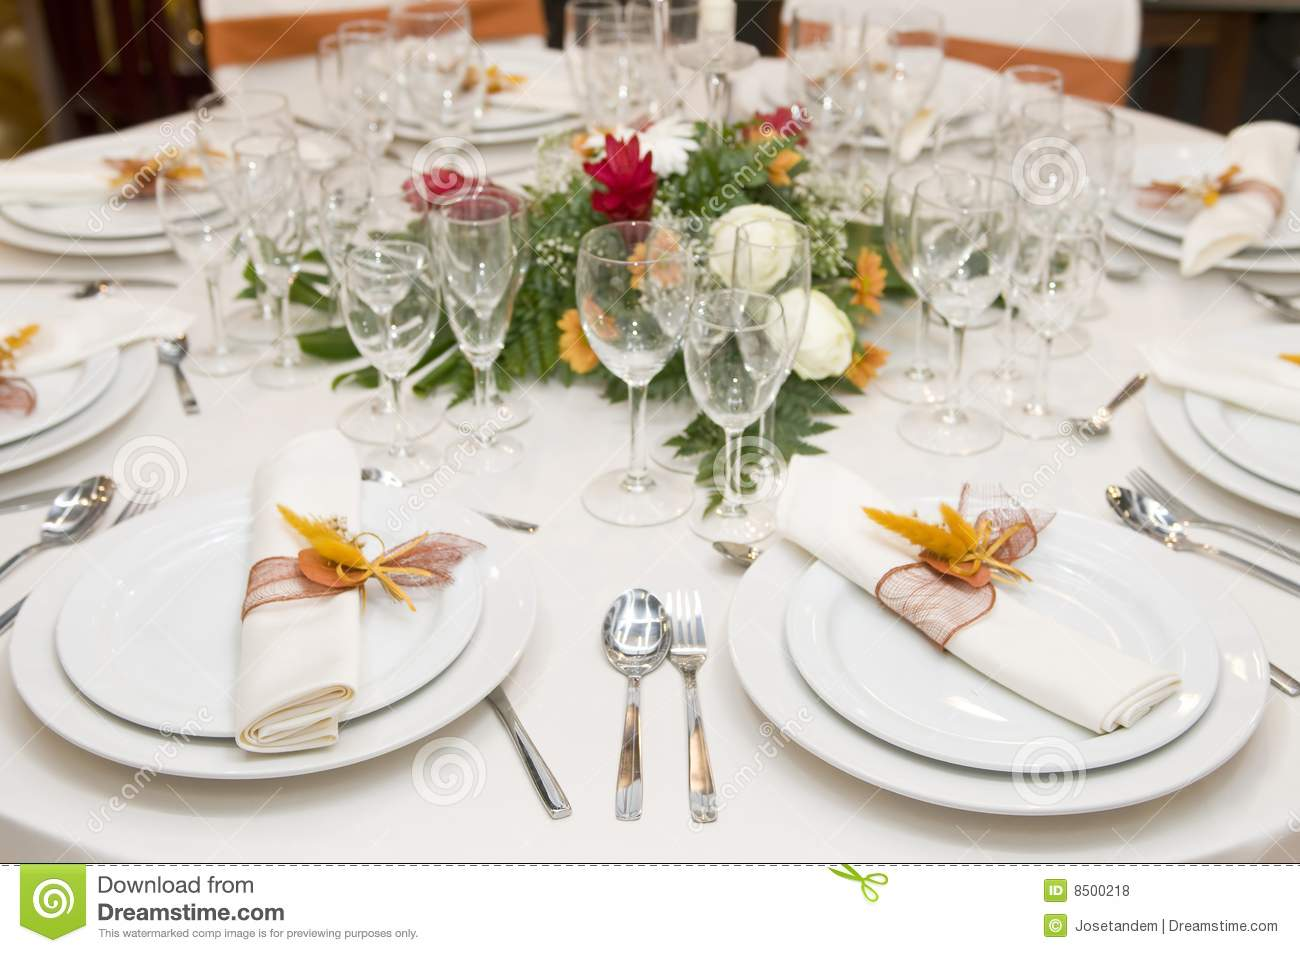 Fancy Table Set For A Wedding Celebration Royalty Free